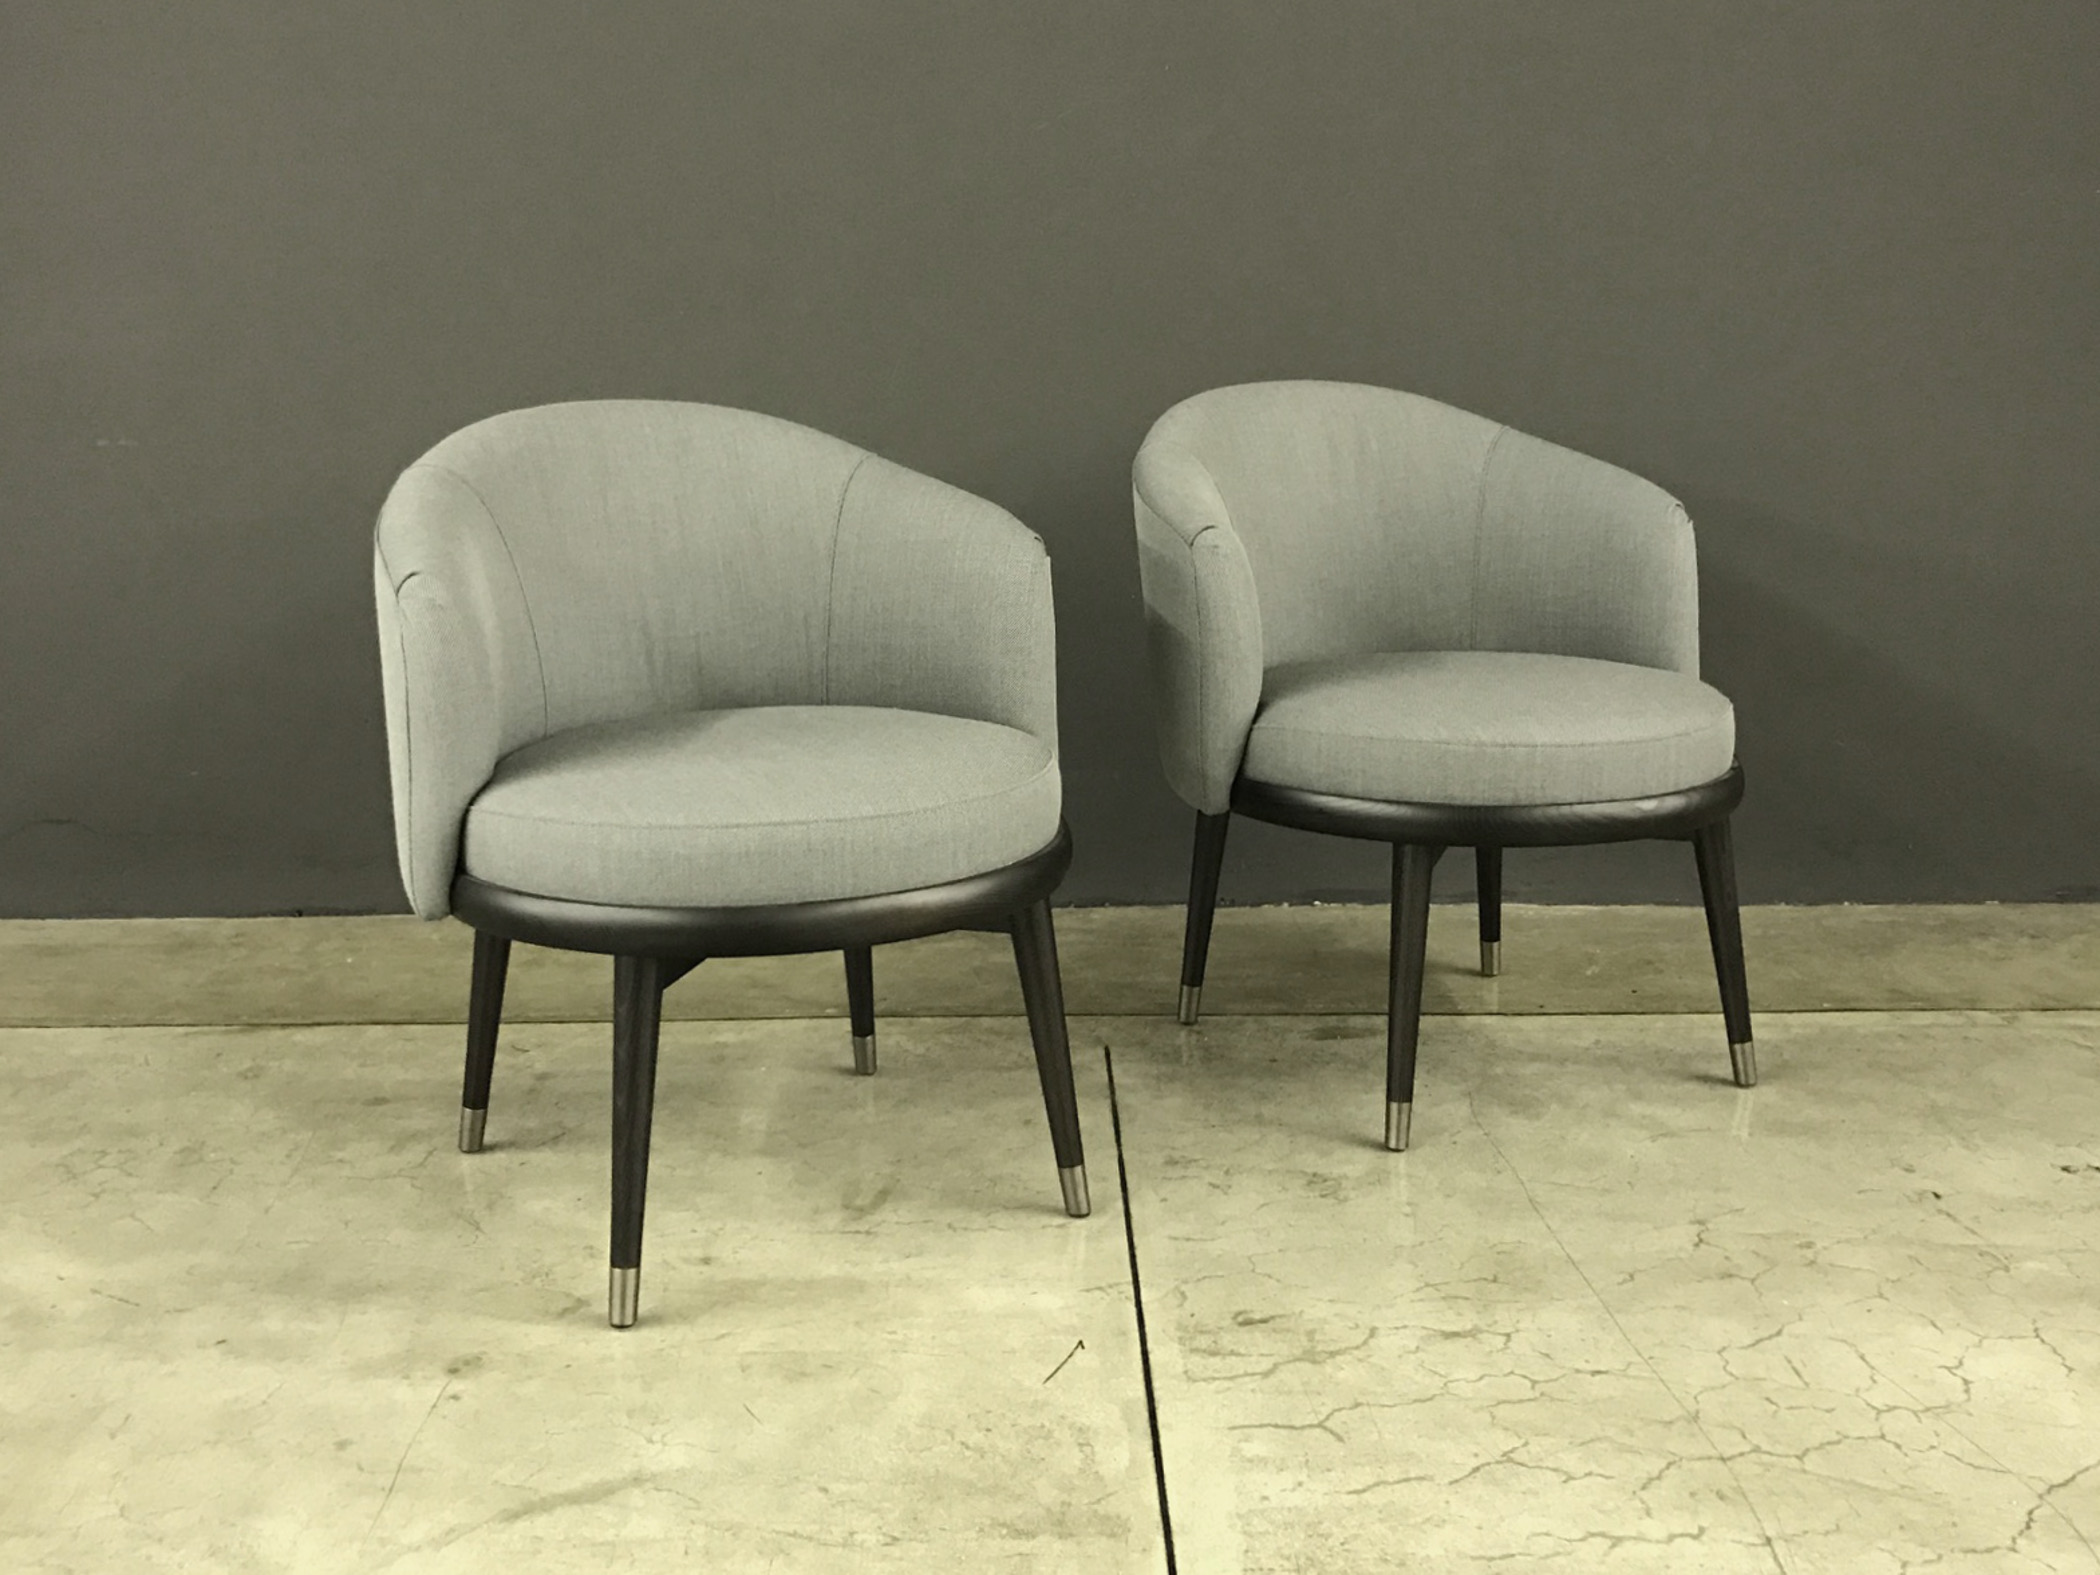 Poltroncine marelli outlet for Outlet poltrone